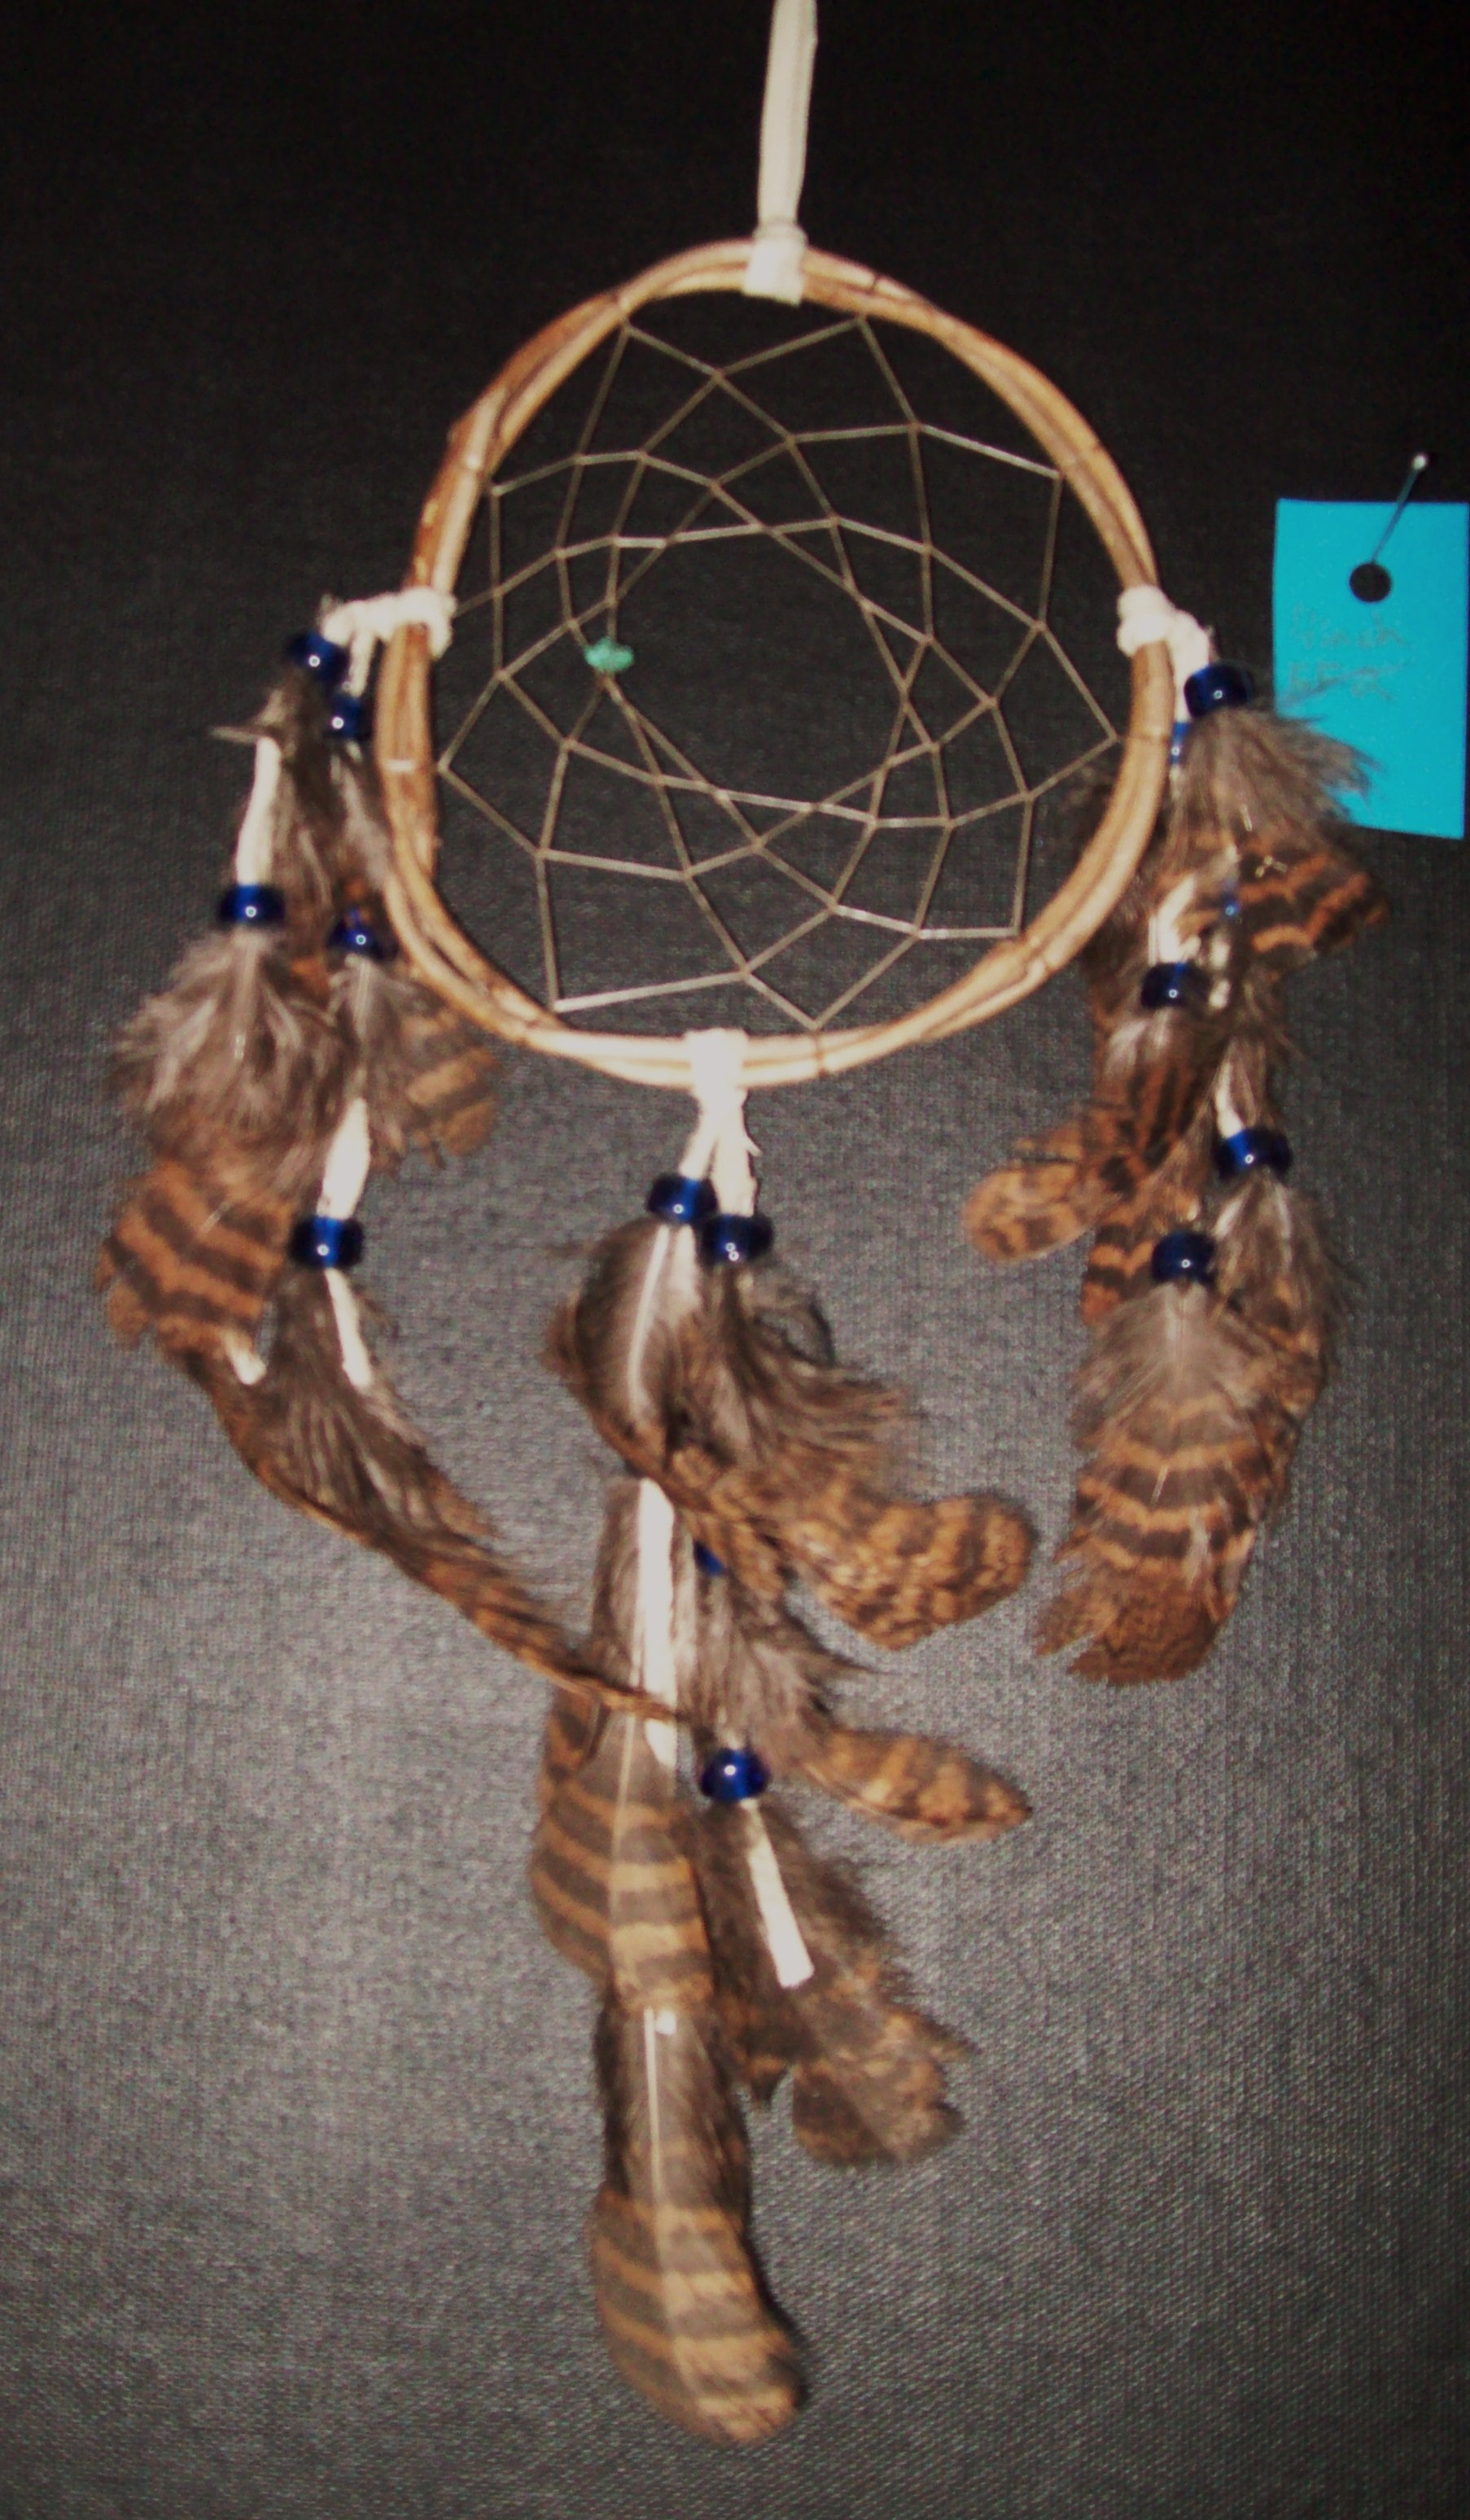 Are Dream Catchers Real Shekhinah's hand crafted dream catchers for sale 3